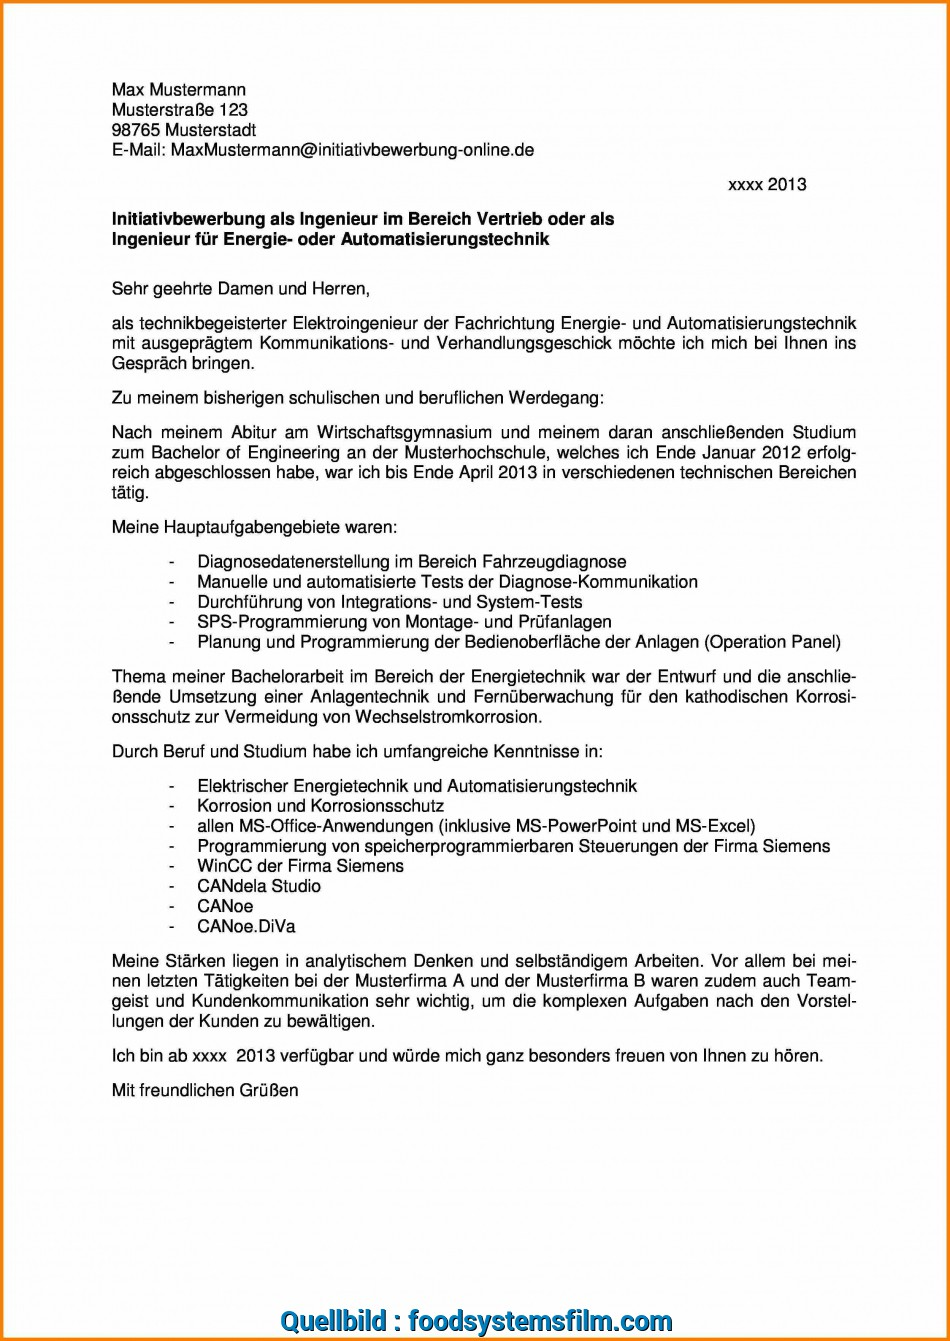 Vorhanden 12+ Initiativbewerbung Ingenieur, Food Systems Film